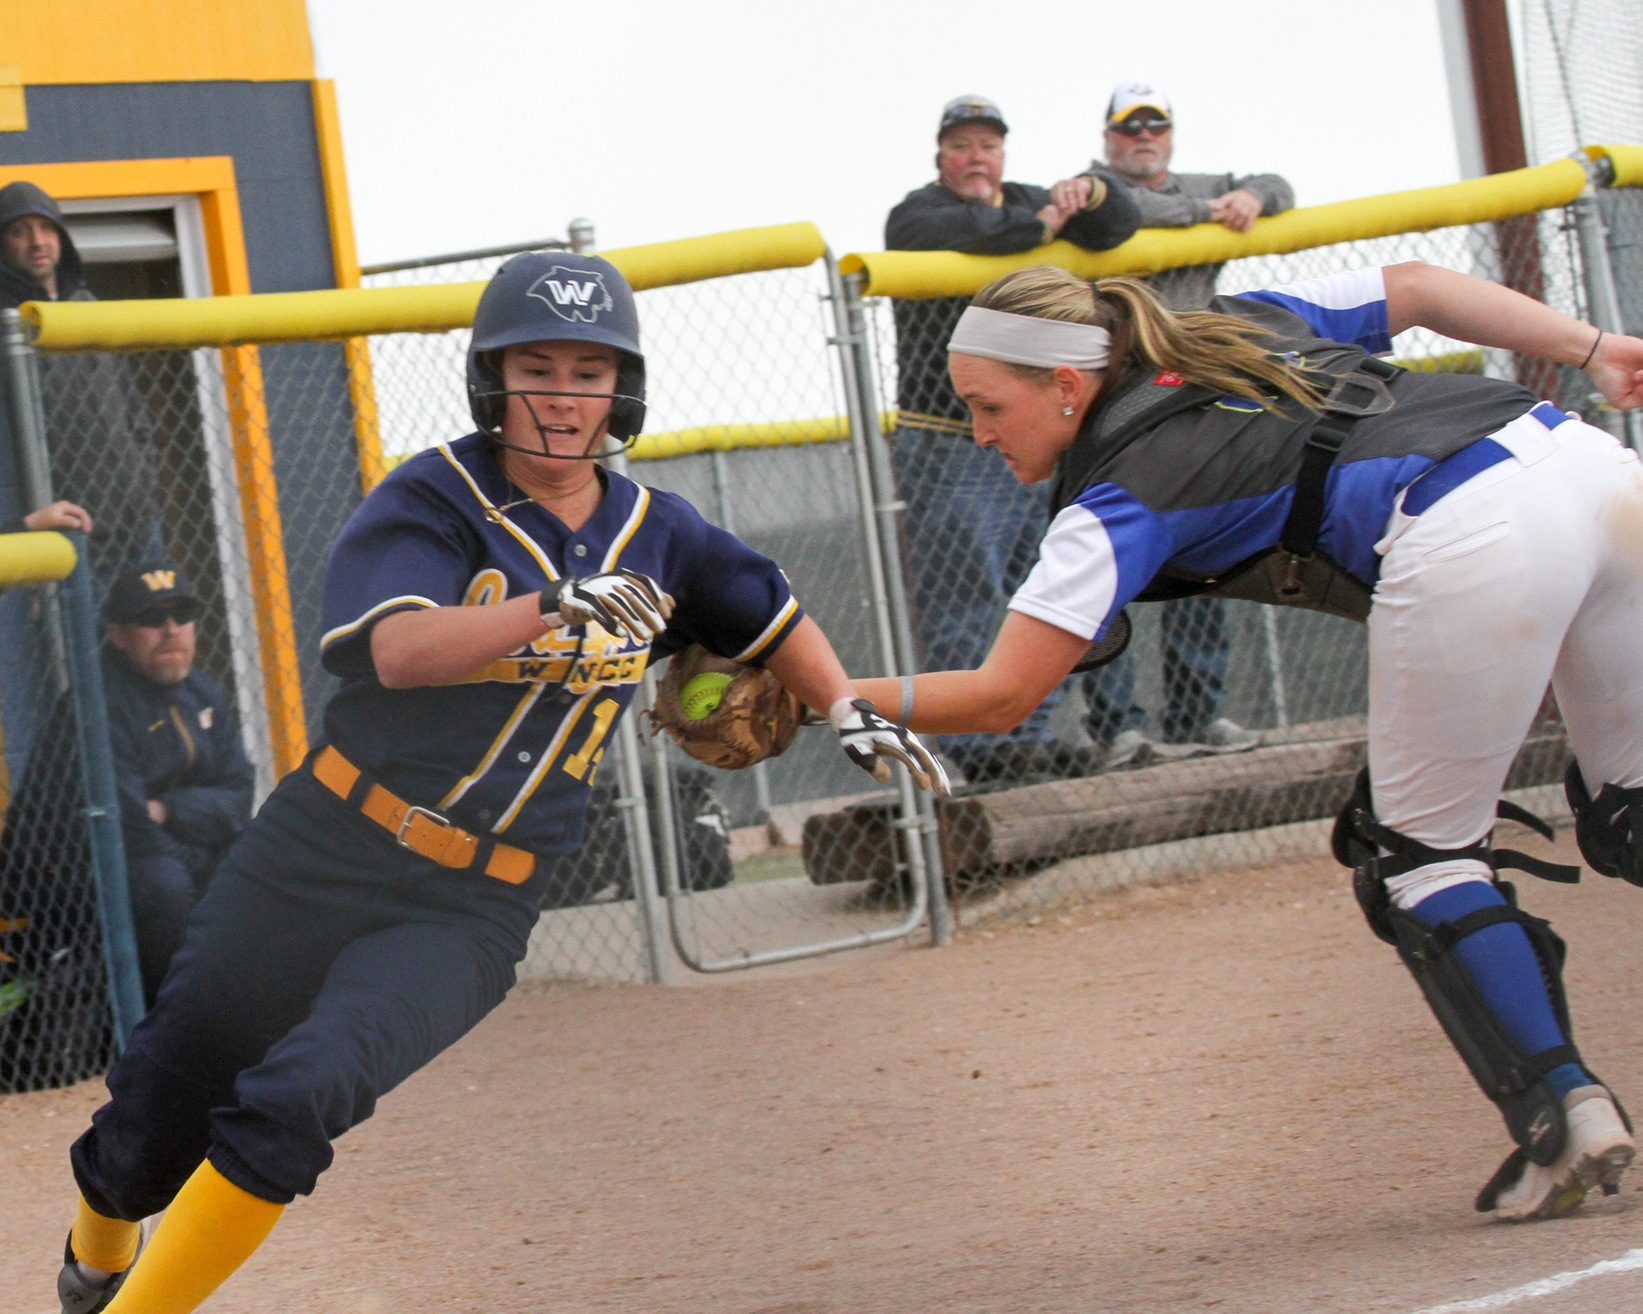 WNCC softball ends season at 38-16